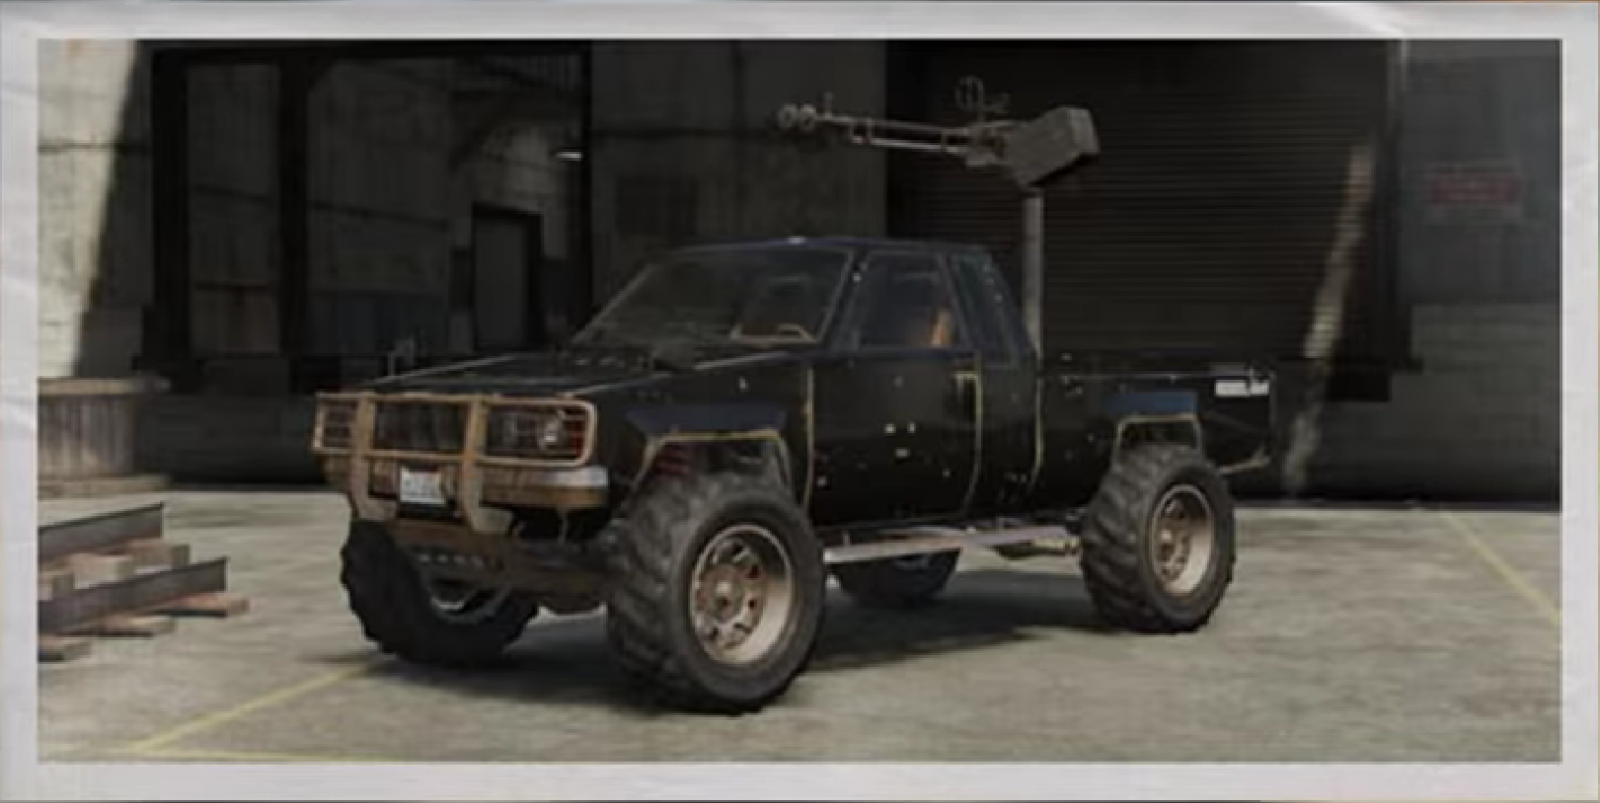 GTA 5 Online Heists: Exclusive Heist missions and leaked DLC vehicles revealed